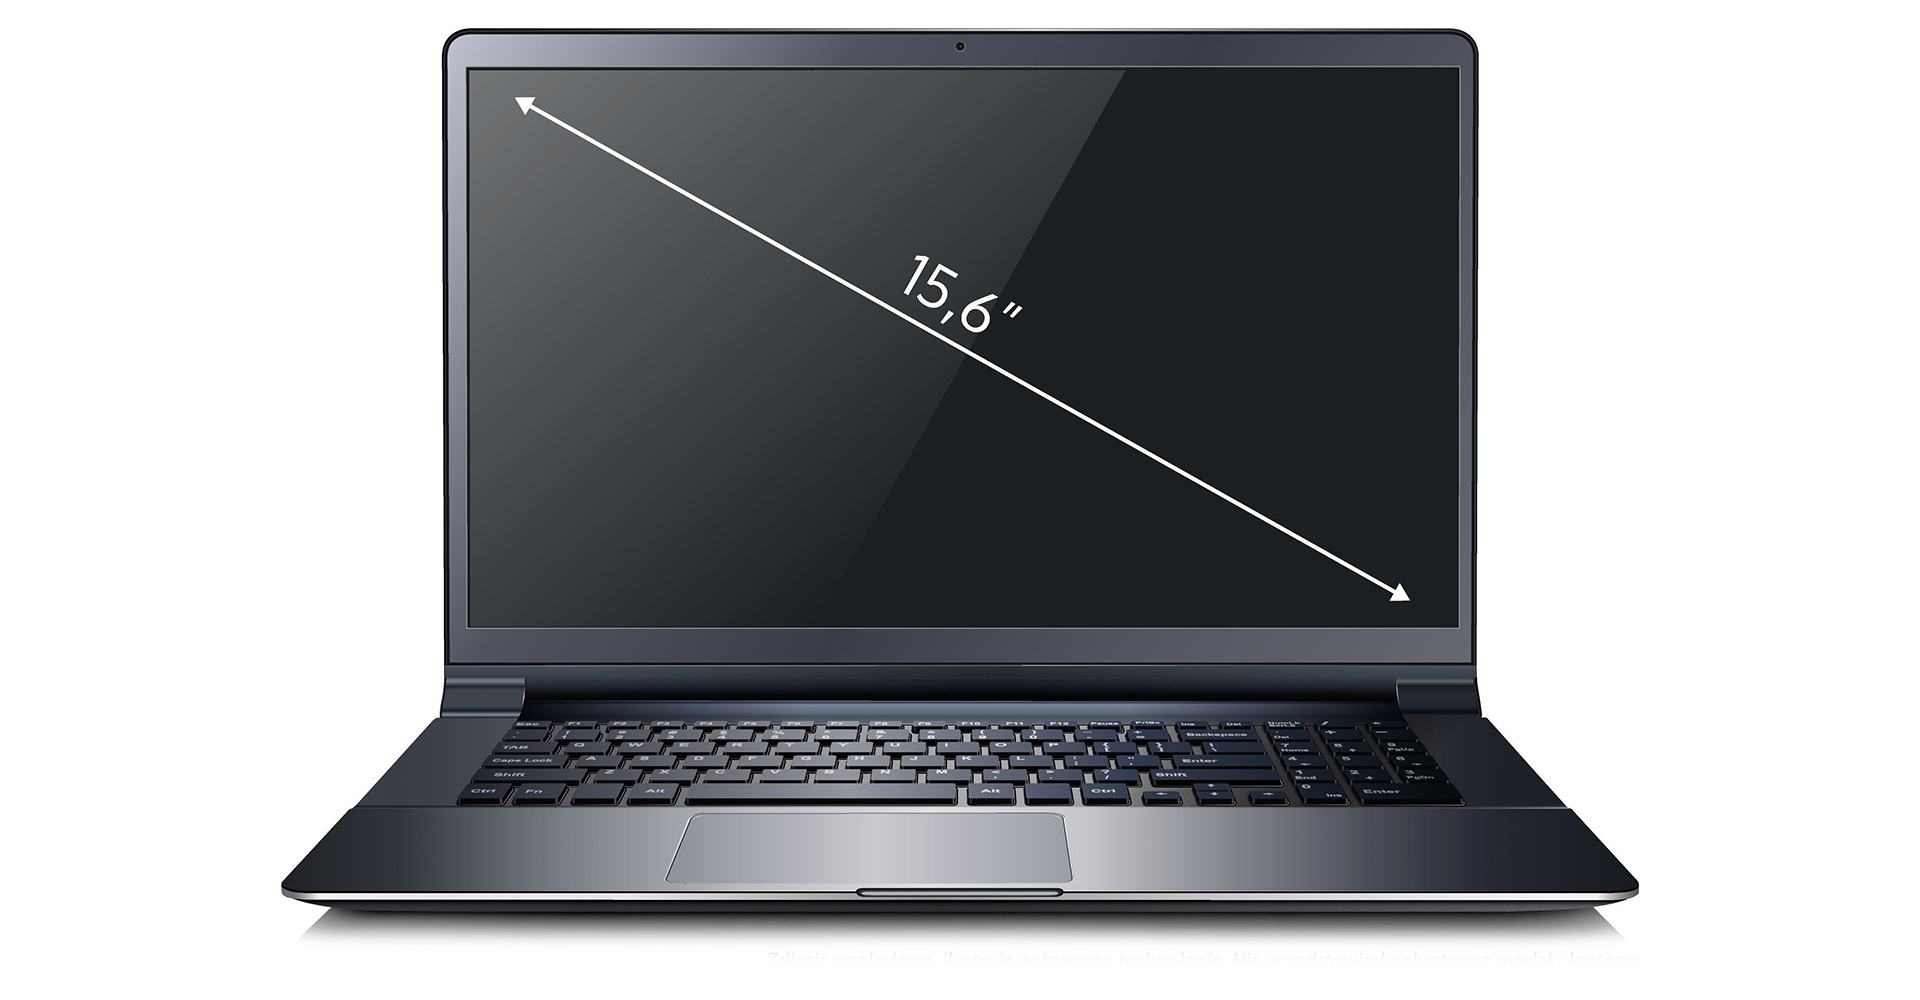 Dell Inspiron 15 5584 i7-8565U 8GB 256GB Win10H                             15.6 collas pa diagonāli